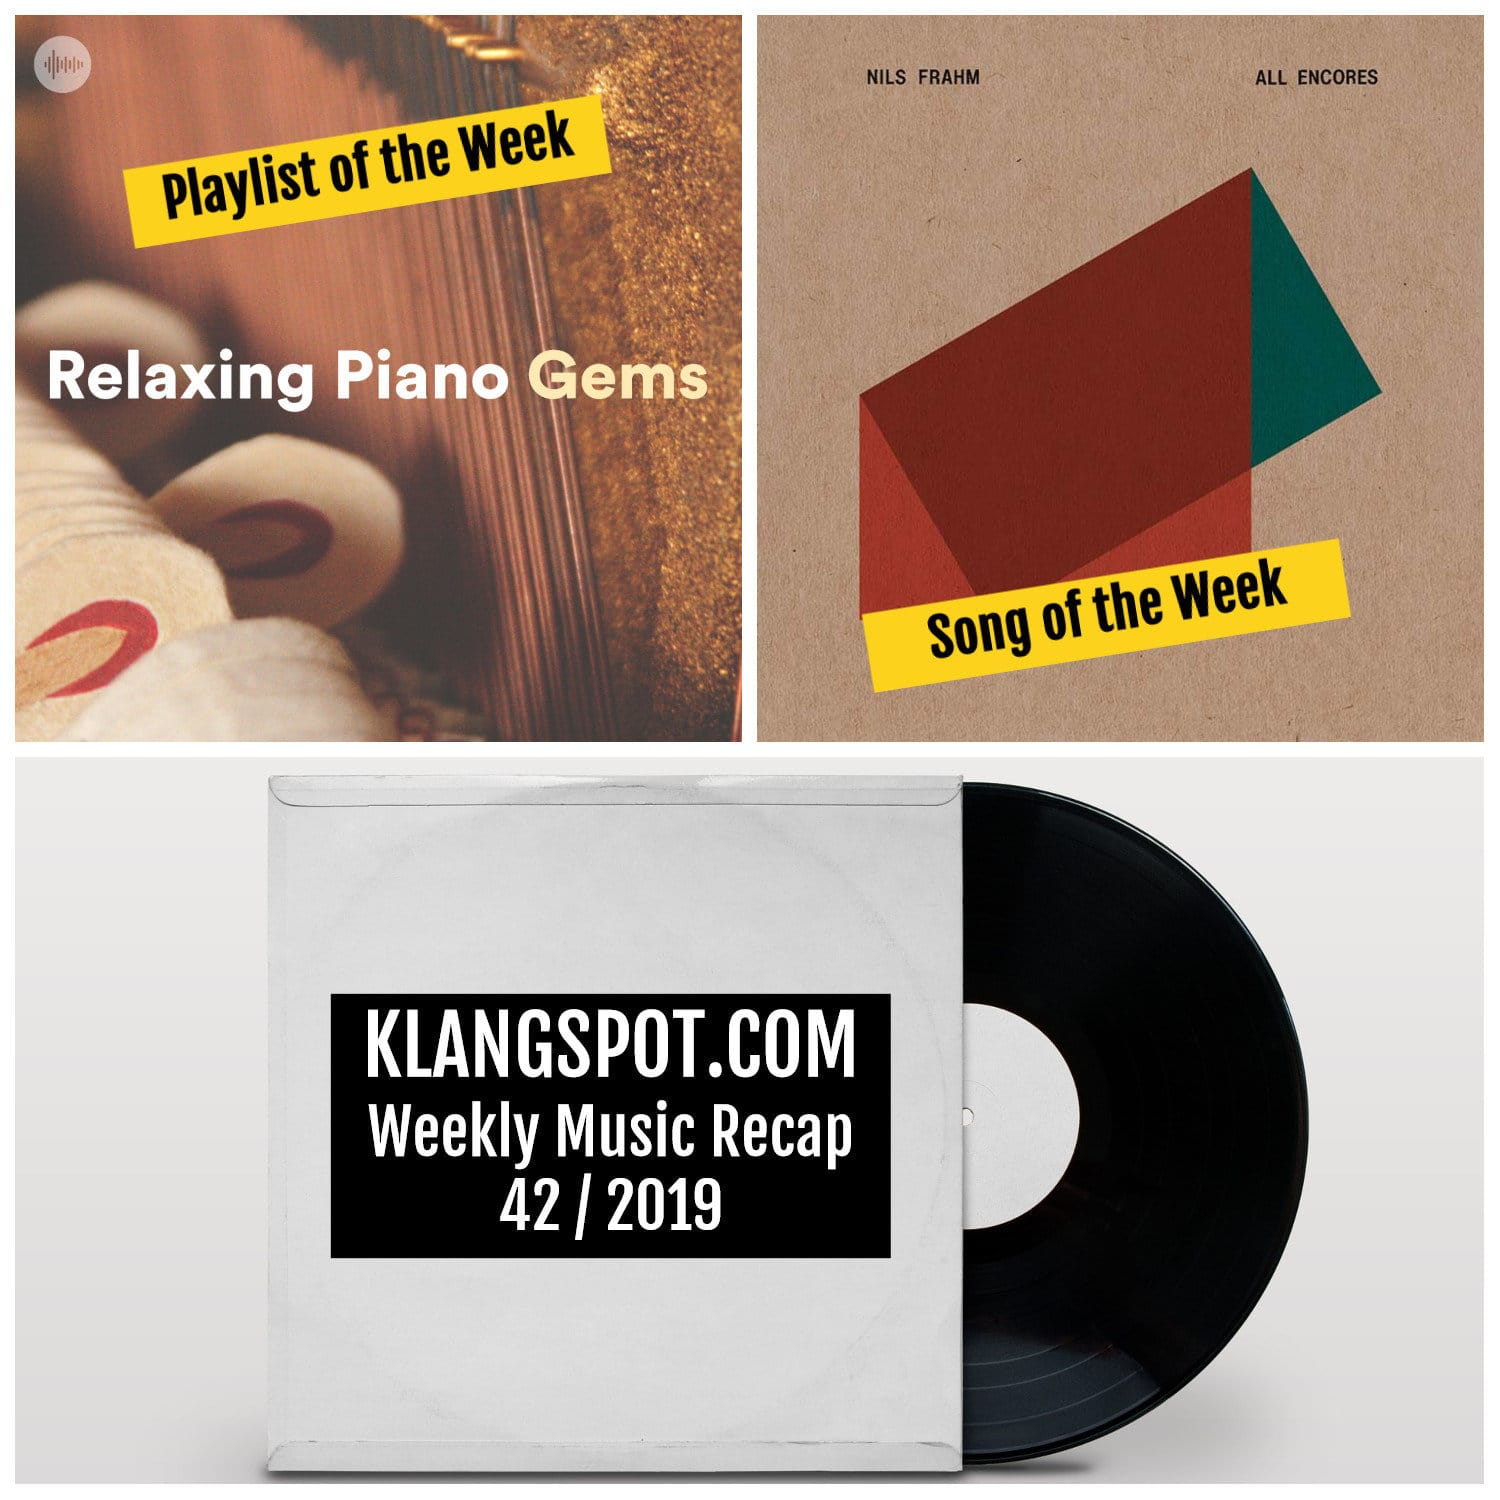 Weekly Music Recap 42/2019: Nils Frahm - 'To Thomas' | Relaxing Piano Gems